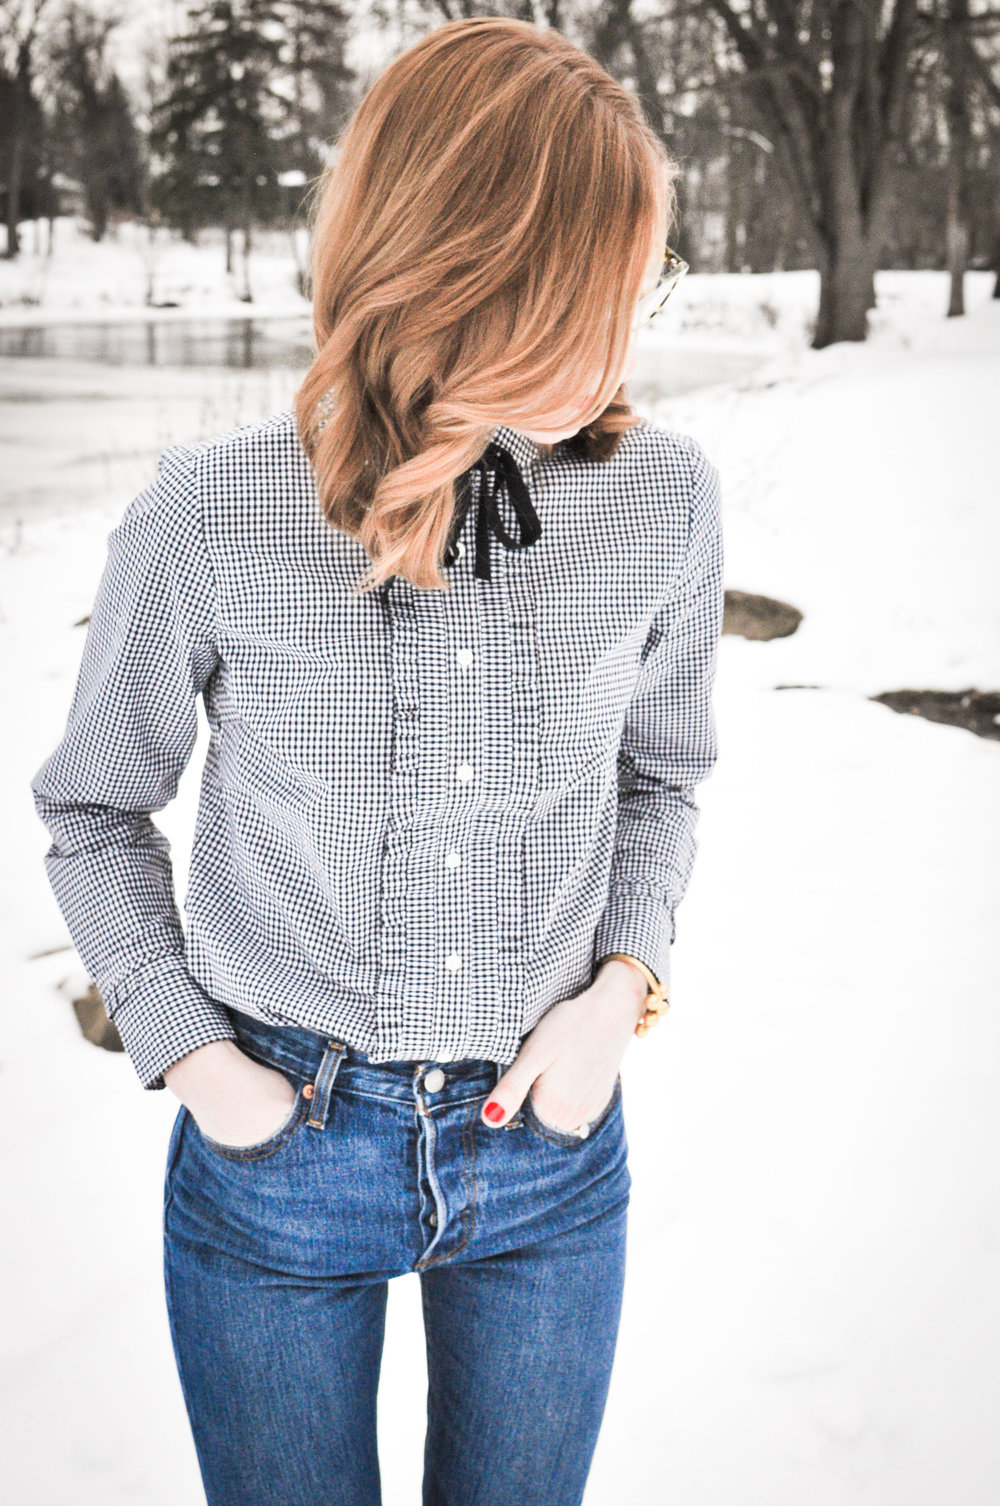 Woman in jeans during winter